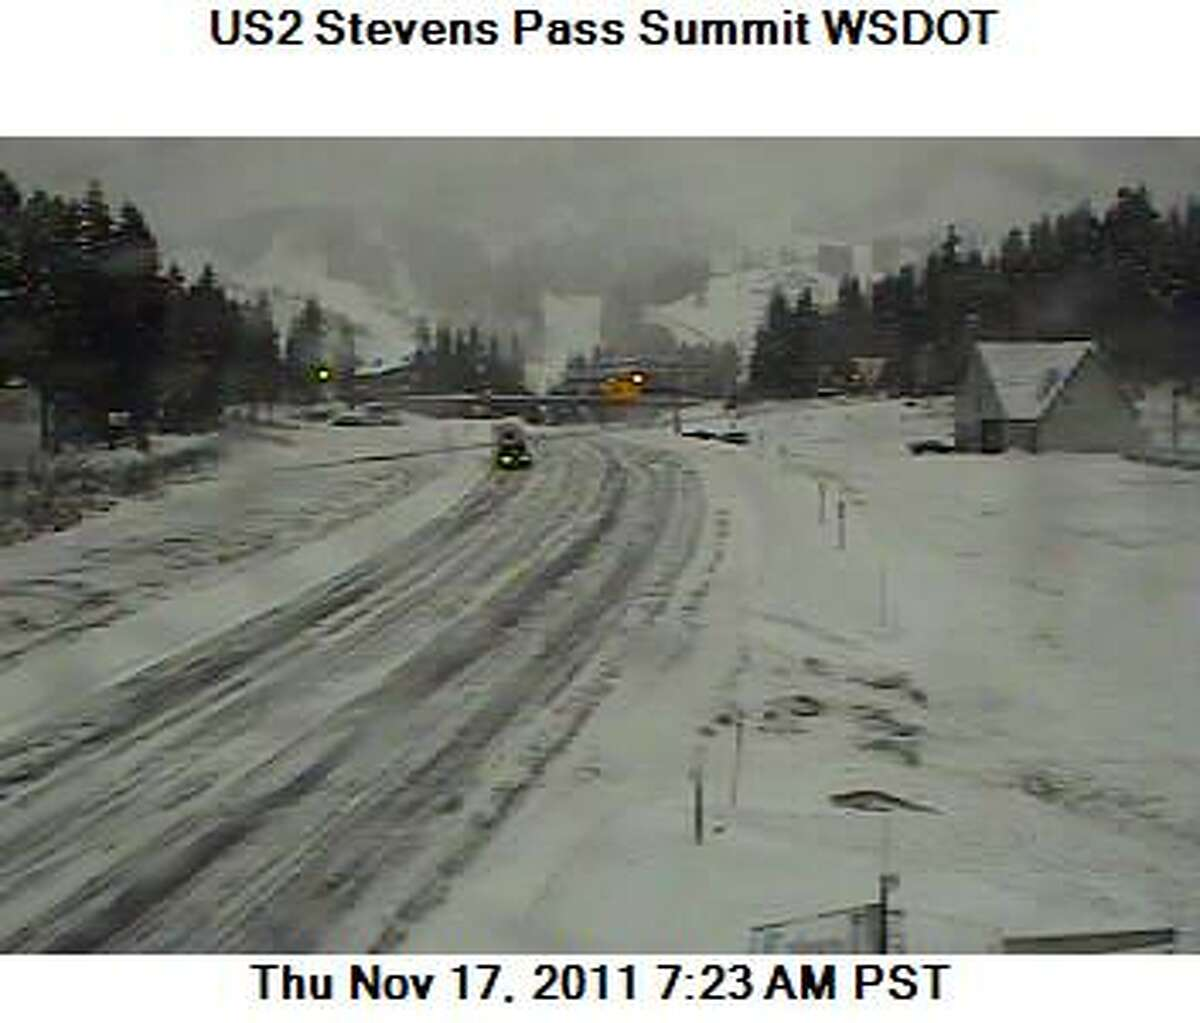 Stevens Pass: Carry chains over the next few days. Photo from the Washington Department of Transportation.